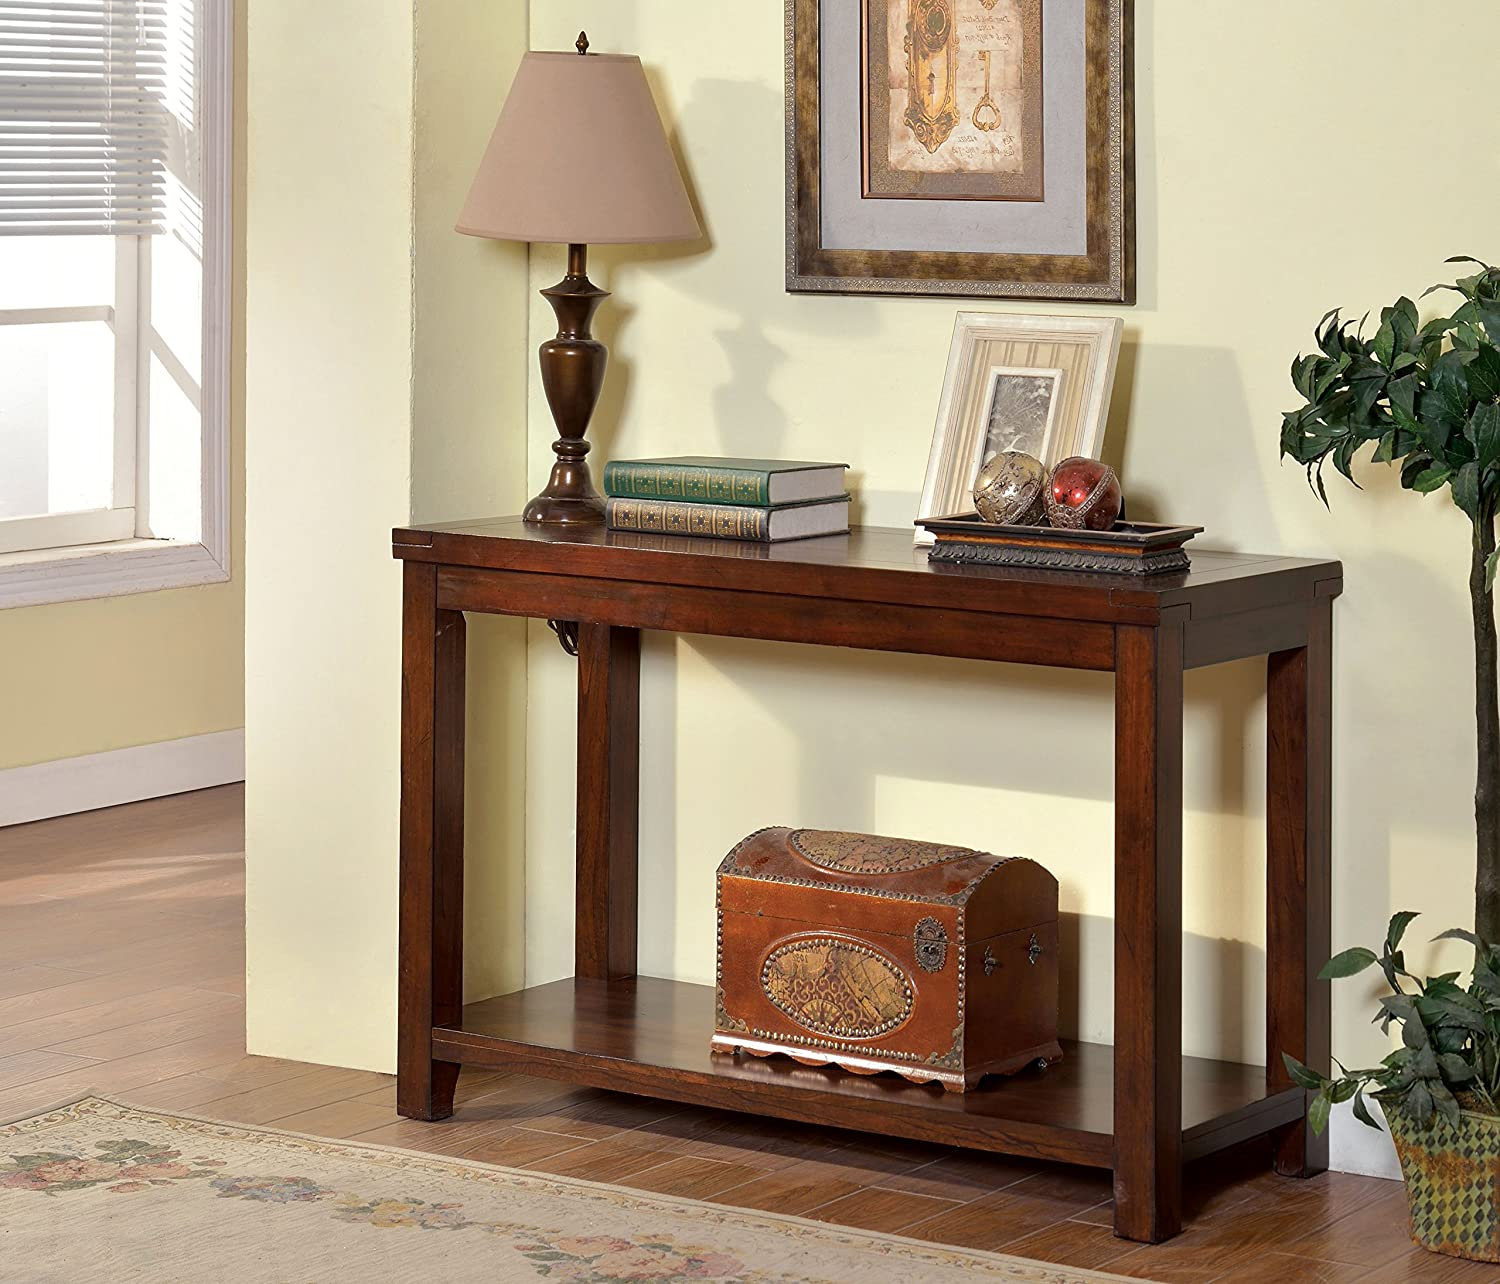 Furniture of America Torrence Transitional Sofa Table, Dark Cherry